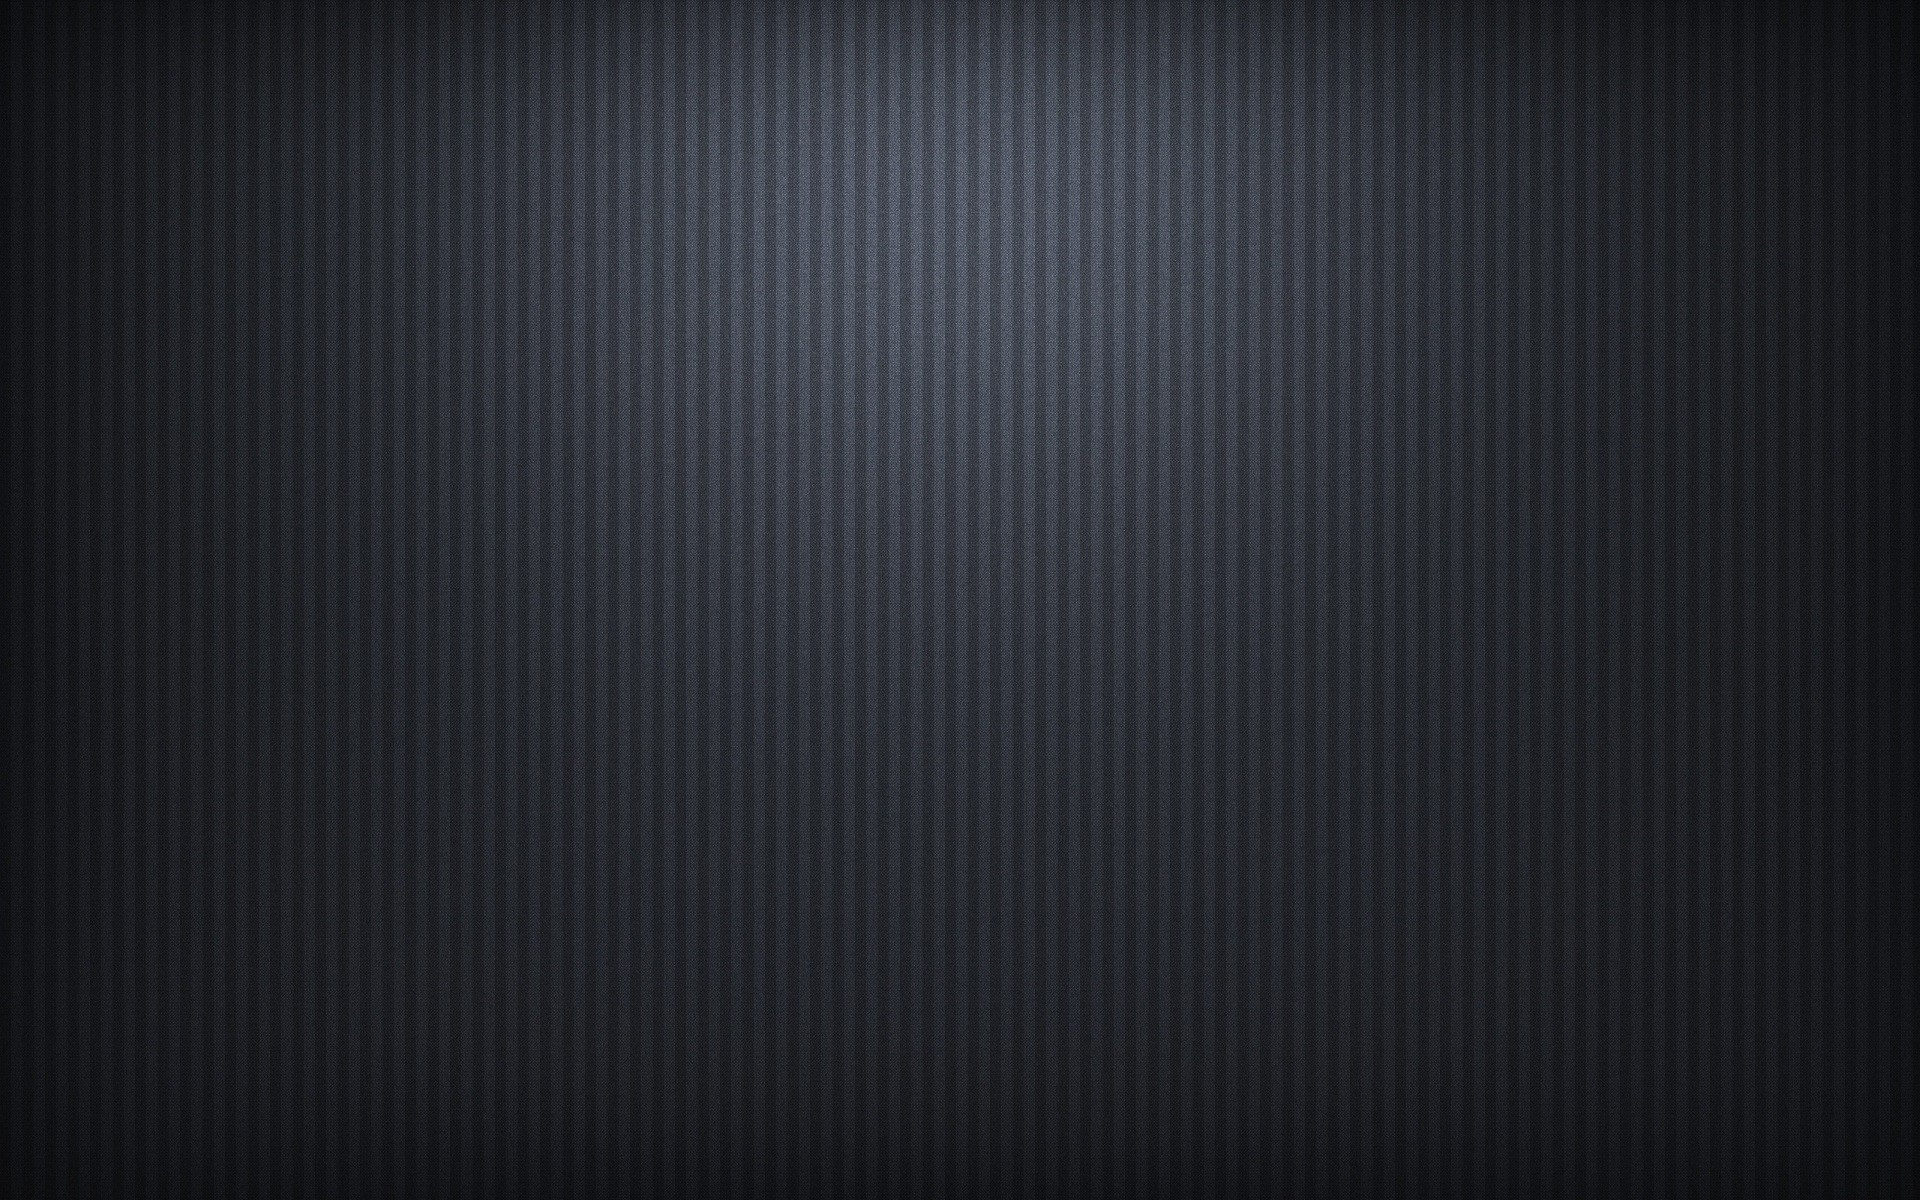 Abstract Dark Textures Artwork Stripes Wallpaper